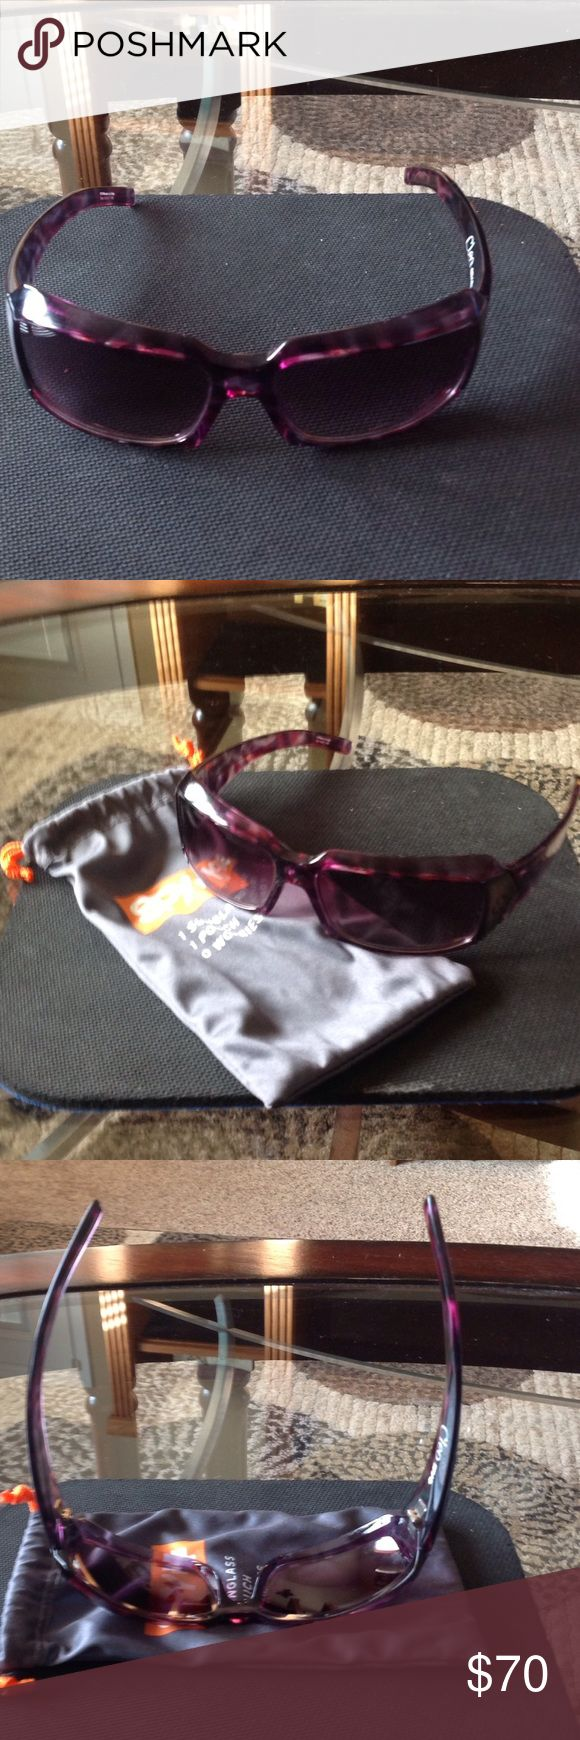 """Women's SPY Sunglasses """"CLEO"""" Women's SPY Sunglasses """"CLEO""""-Hardly worn, but there's a very small surface scratch on the left lense, a few surface scratches on top of the frames, & the frames are slightly bent, as can be seen in the 3rd pic.... SPY Accessories Sunglasses"""